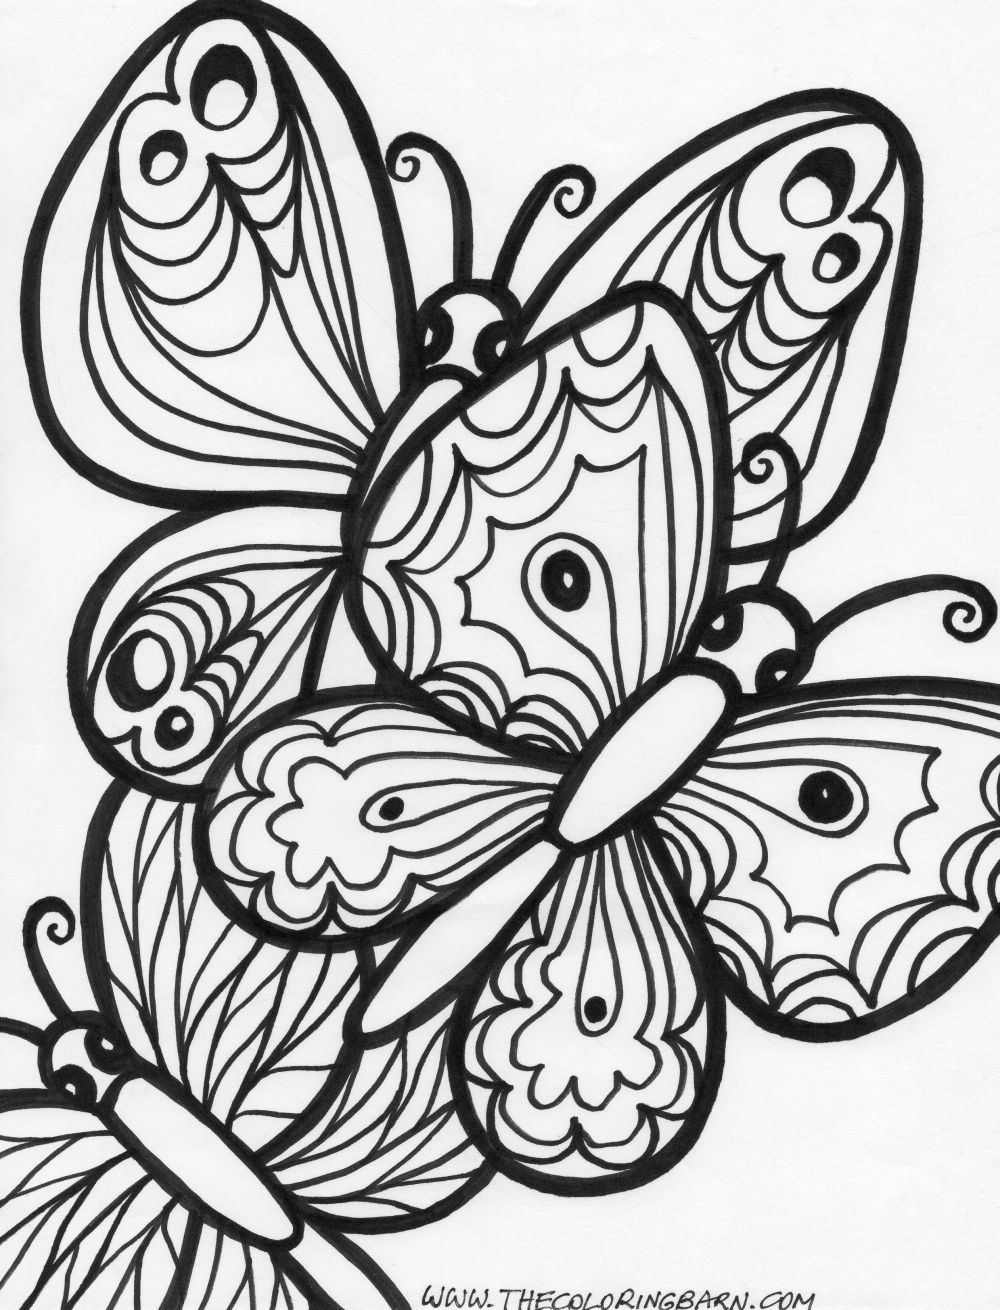 Coloring pages for adults only coloring pages for Adult coloring pages printable